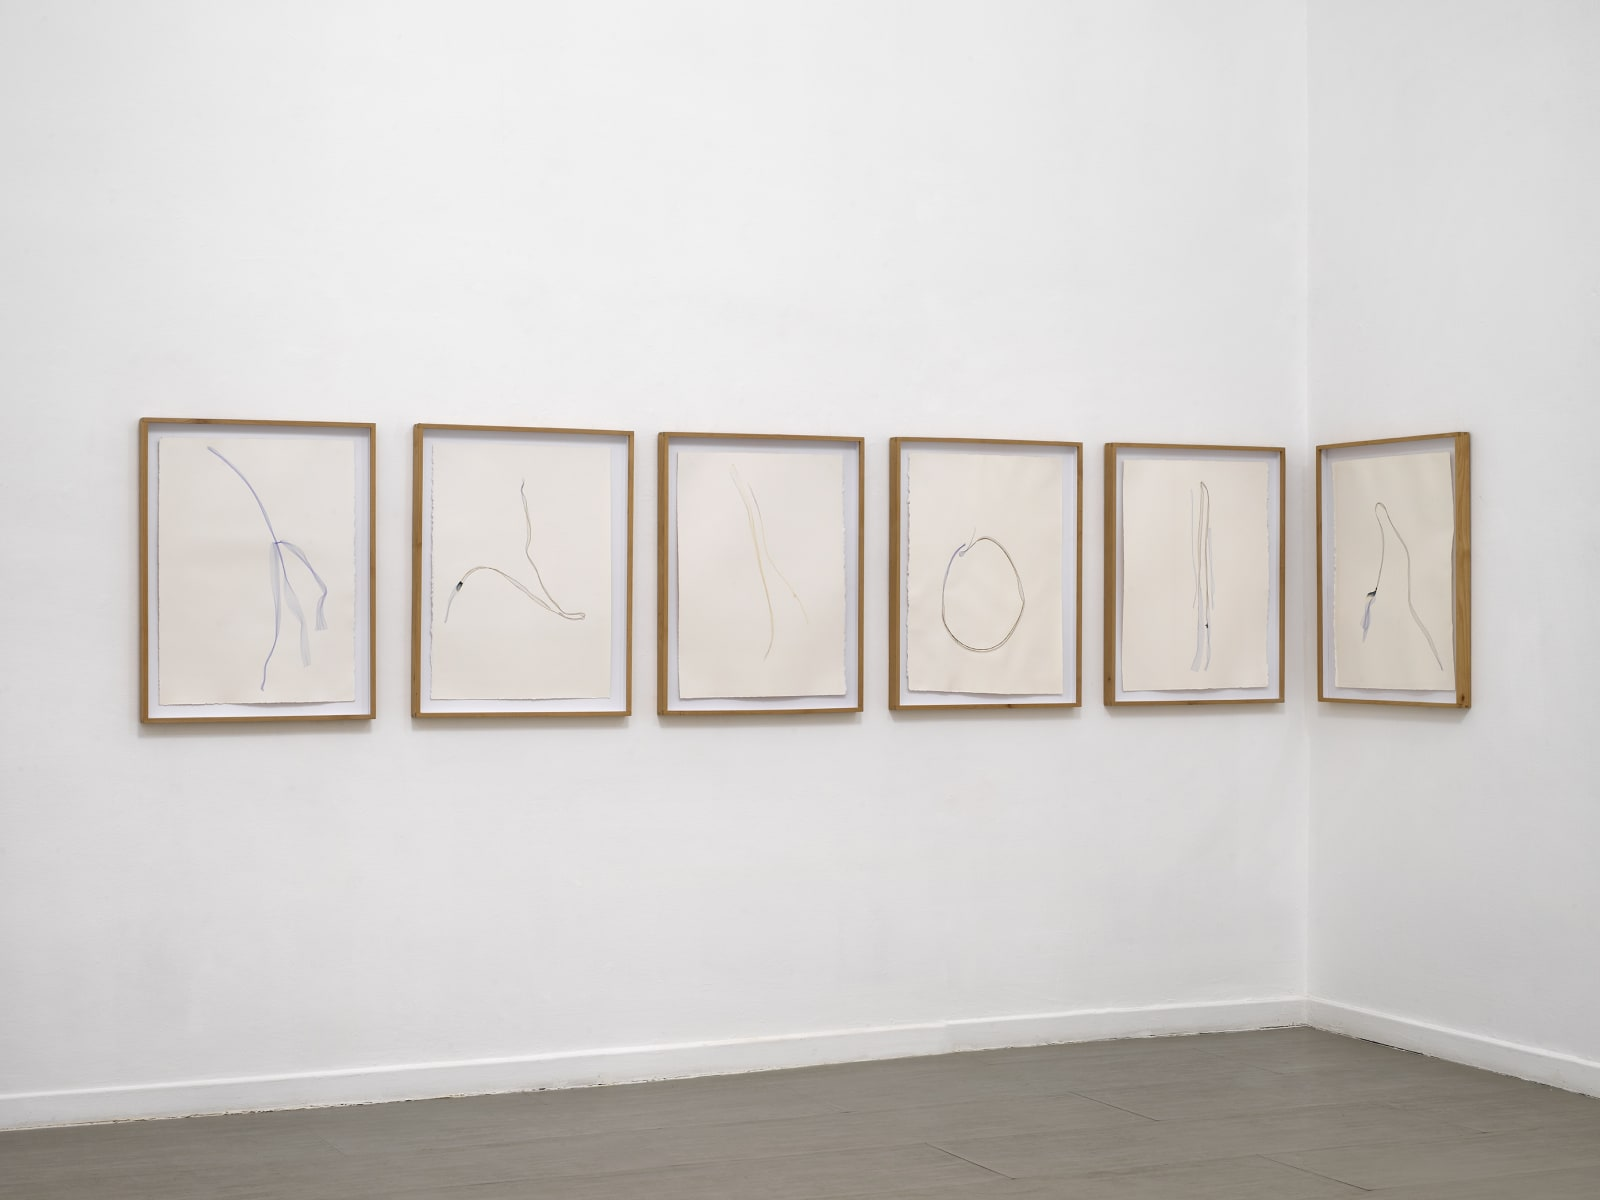 Beatrice Pediconi Nude curated by Cecilia Canziani installation view of the third room ph. Dario Lasagni